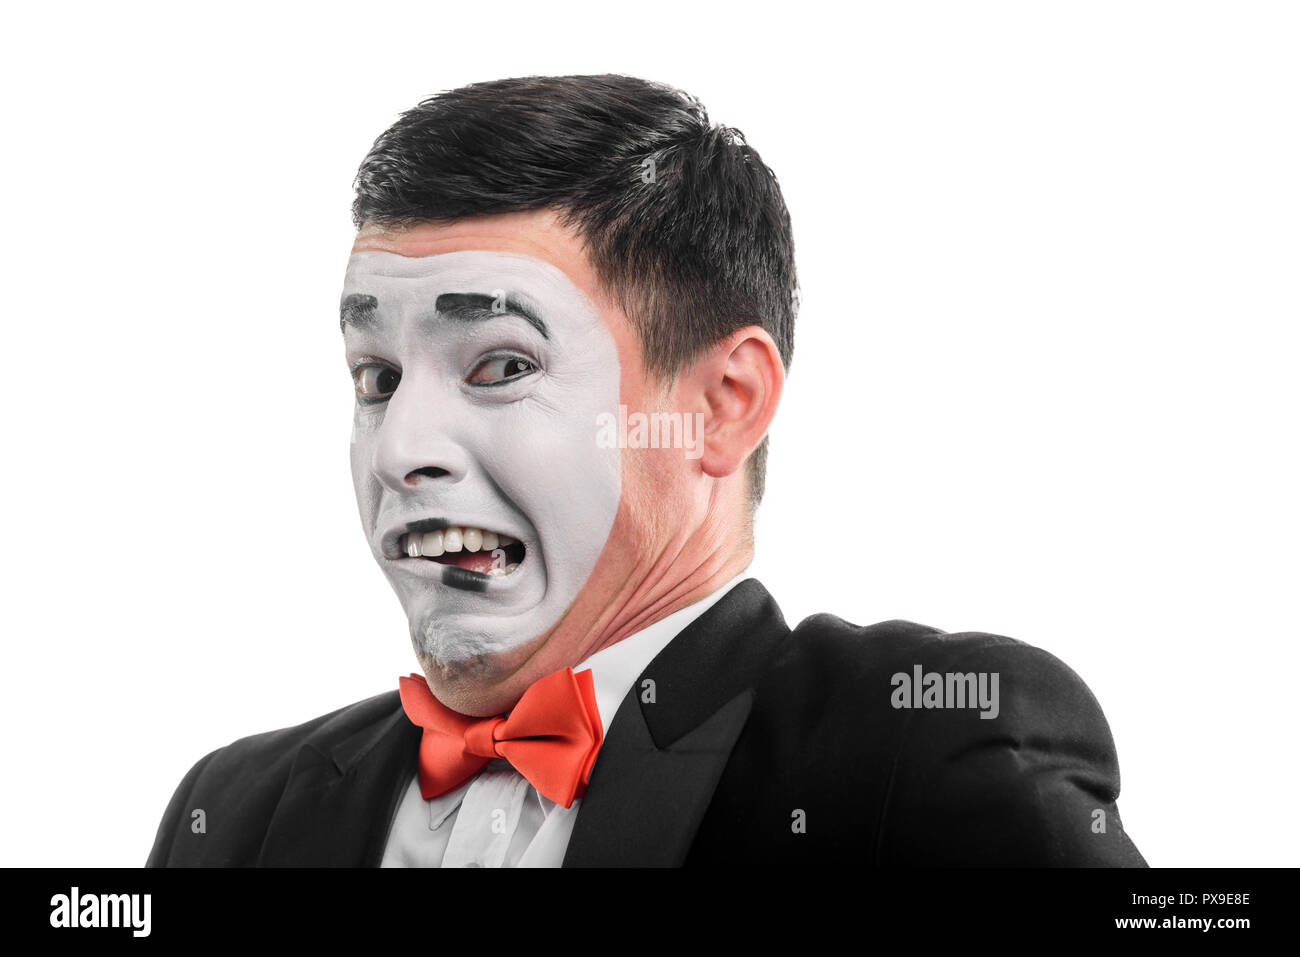 Mime actor shows squeamishness - Stock Image